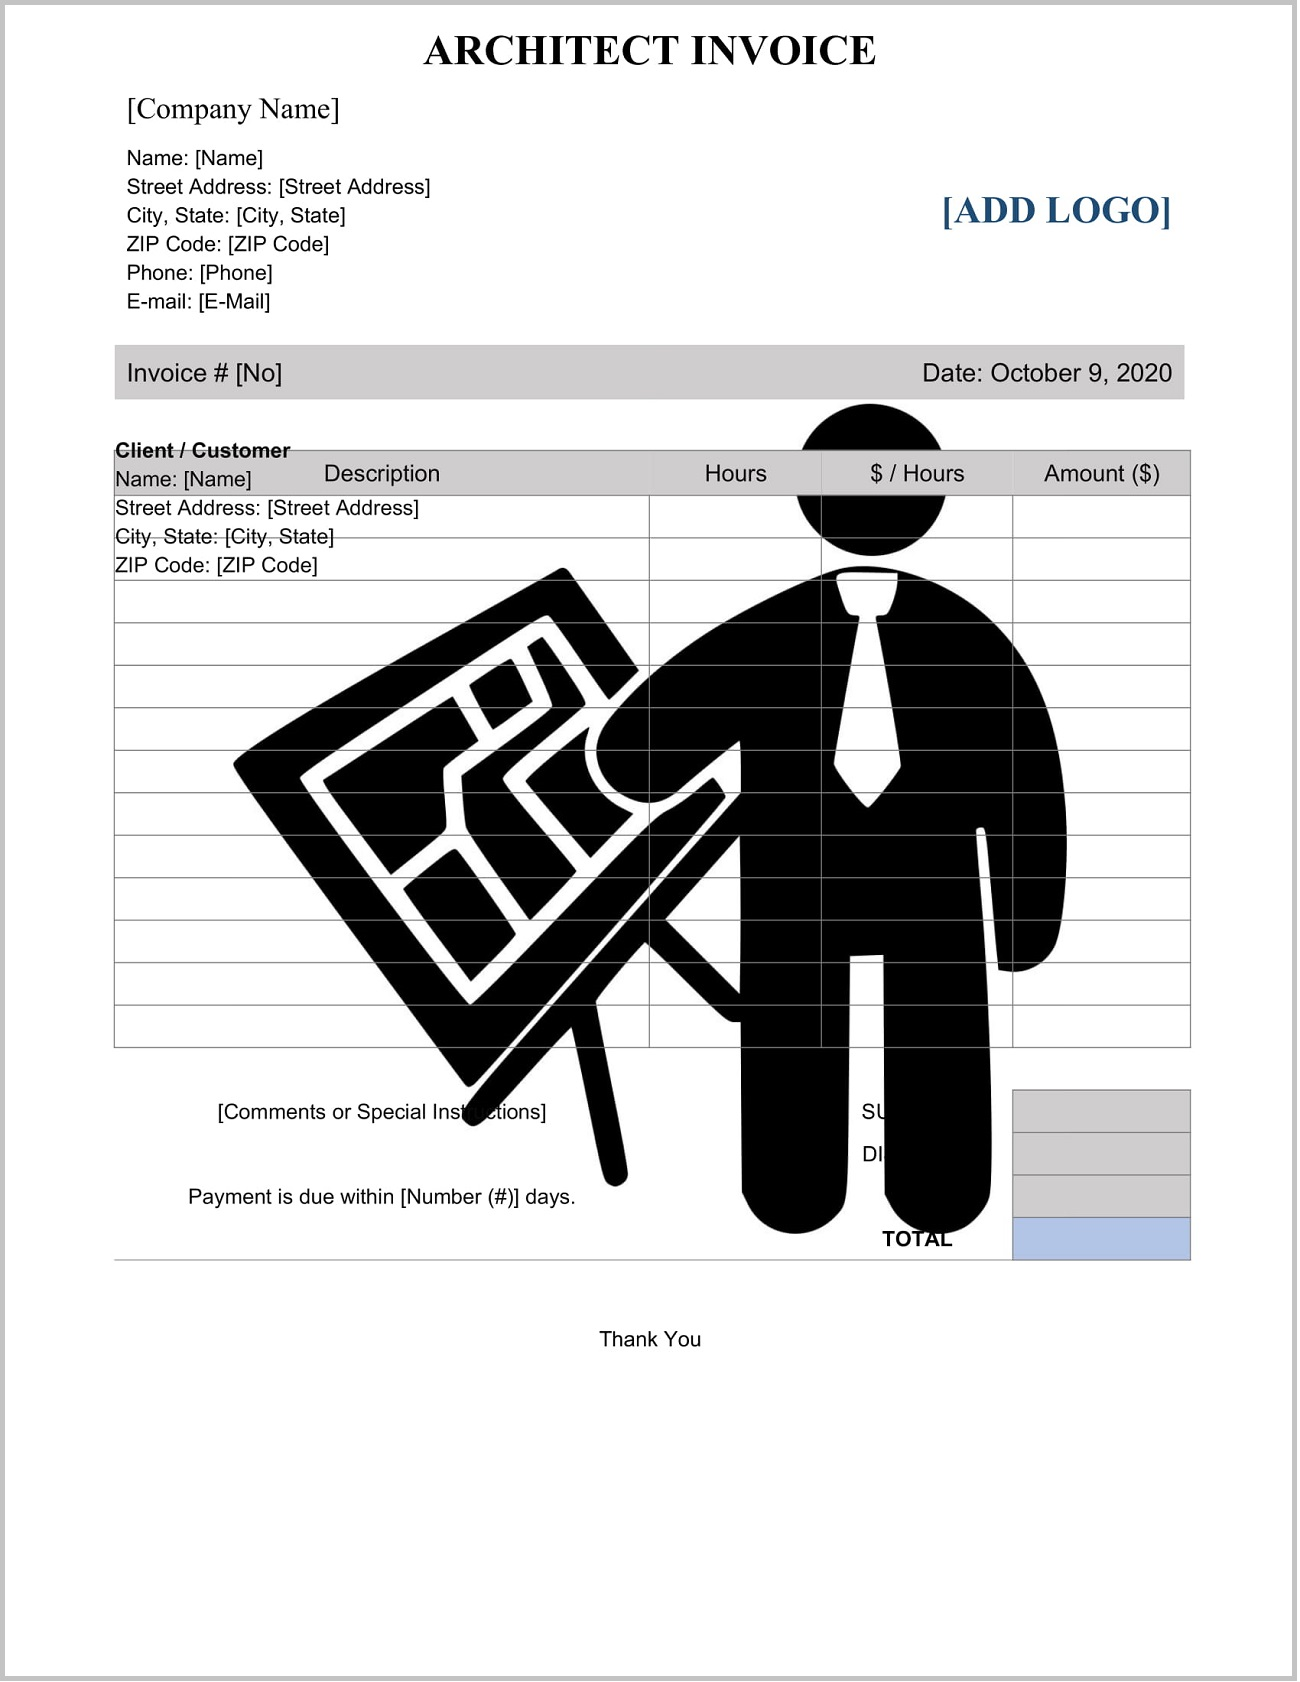 Architect Invoice Template Word